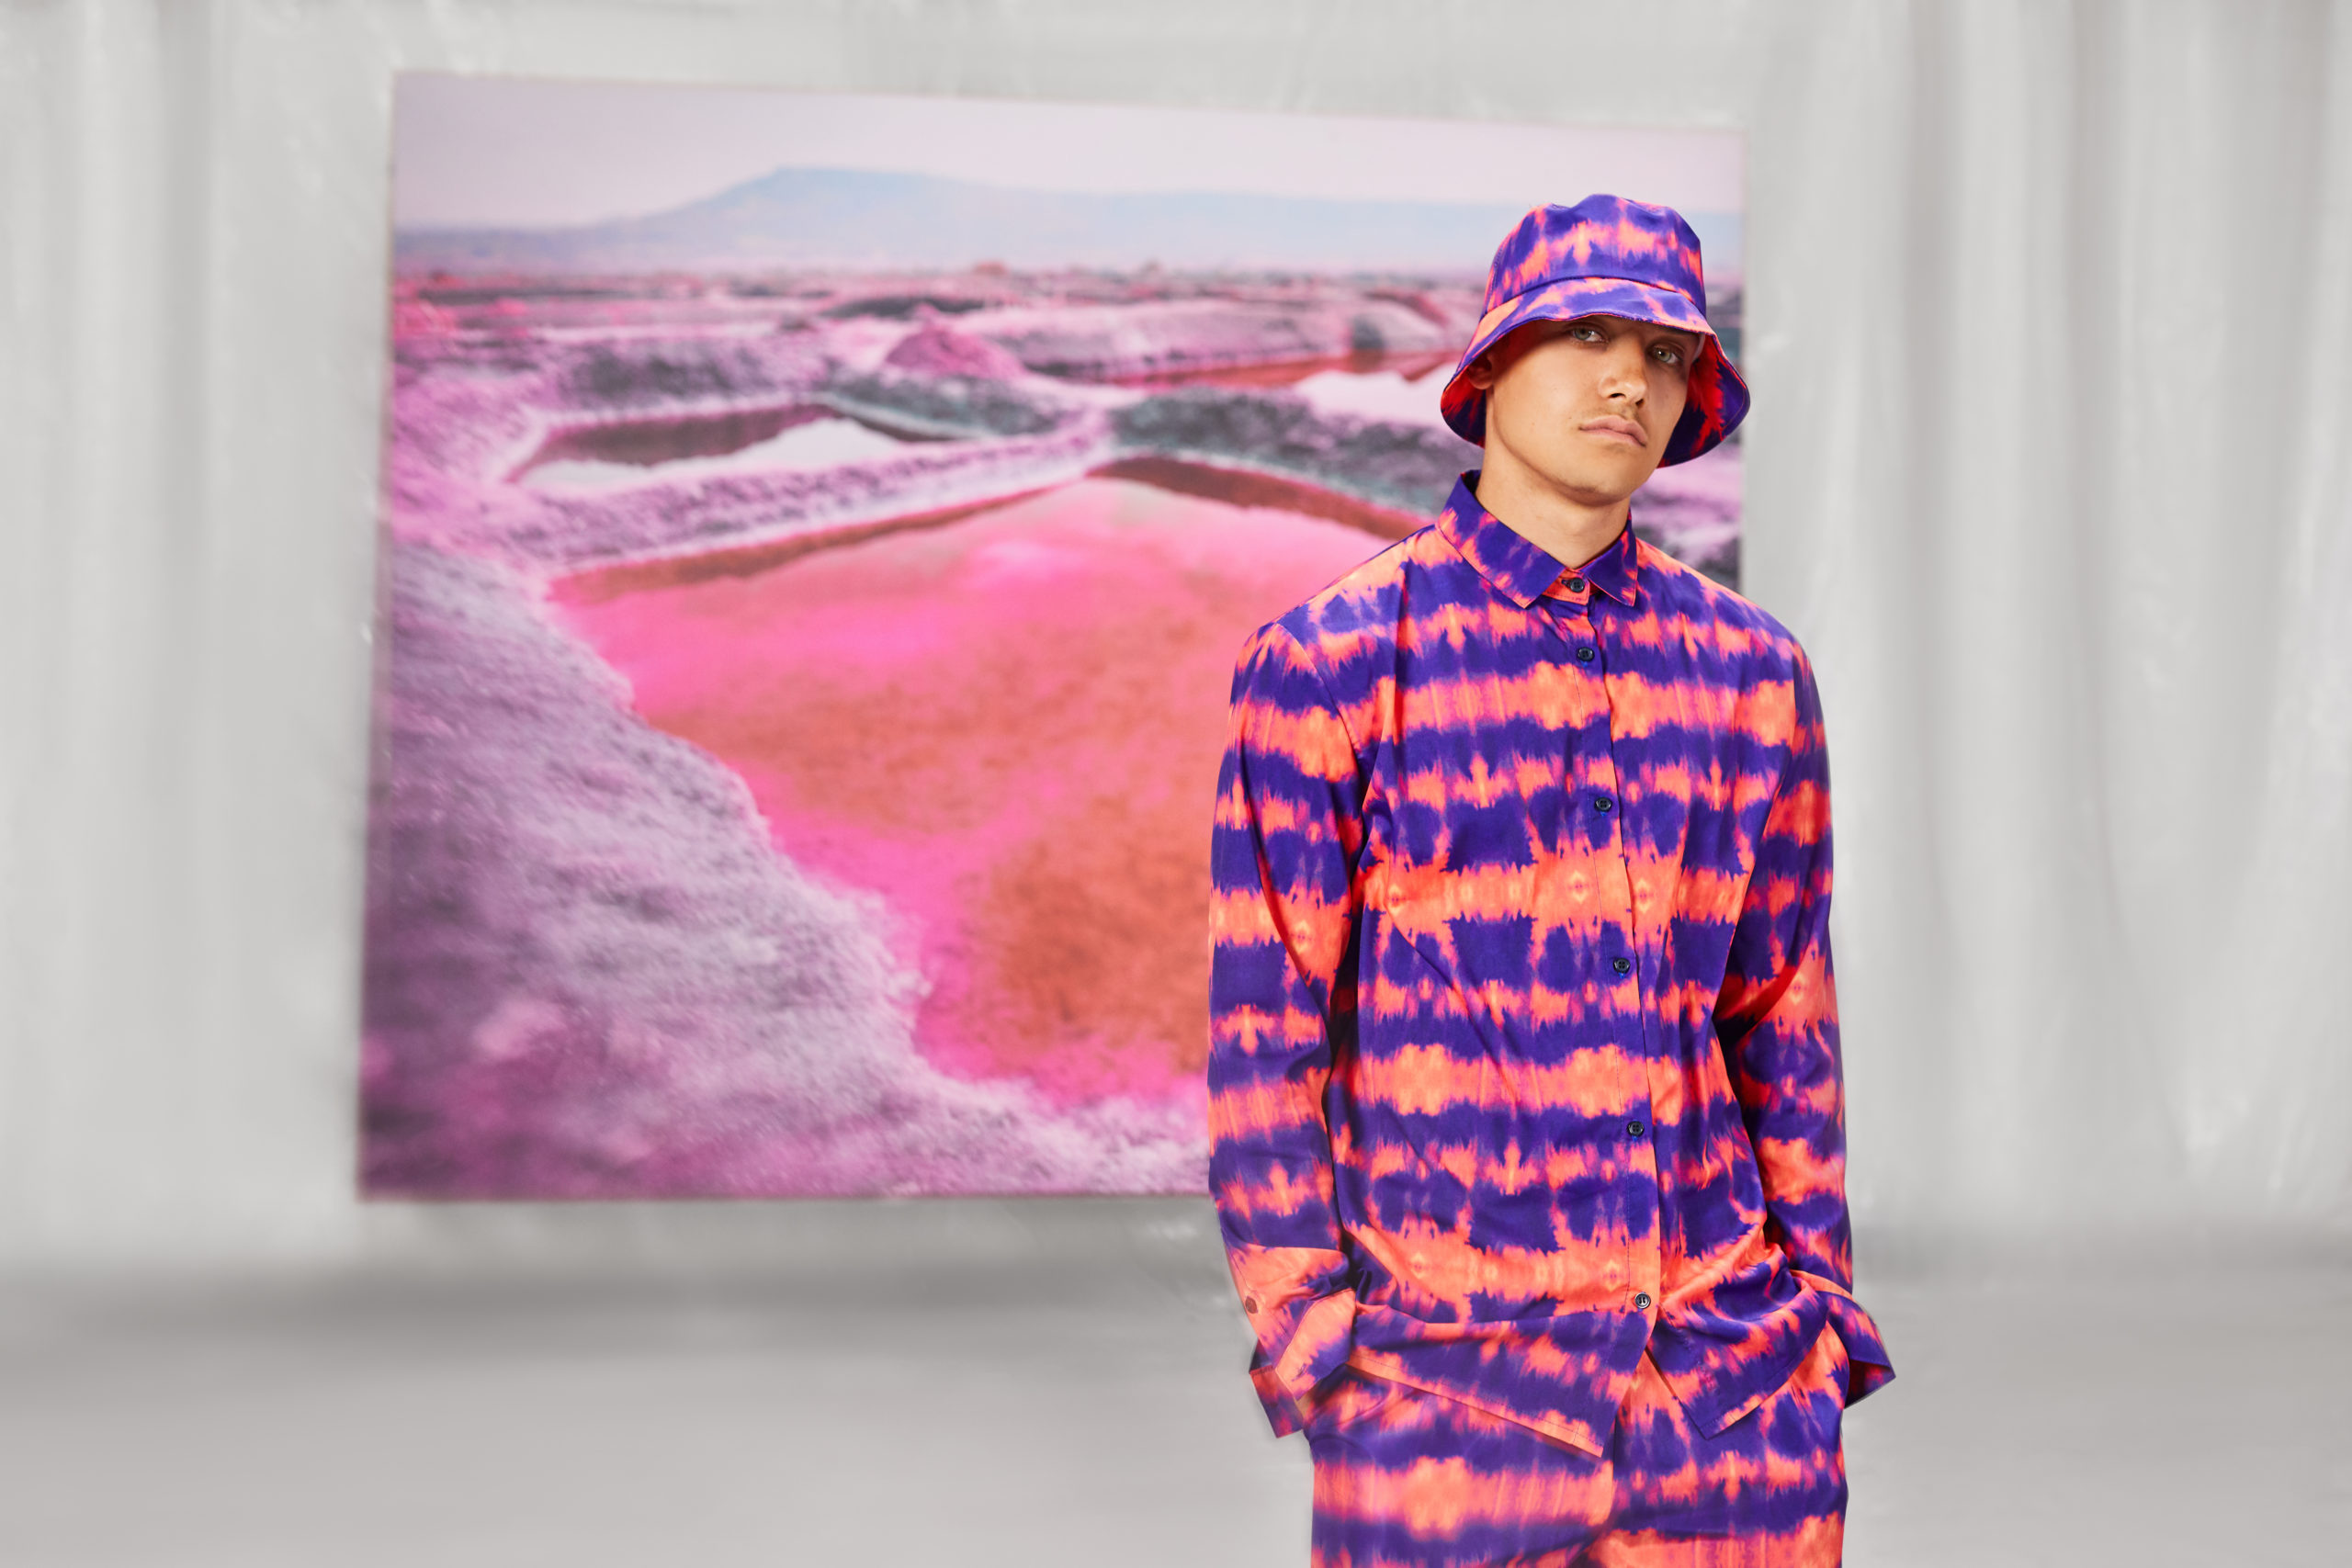 How to Wear Tie-Dye? Top Tips to Pull Off the Tie-Dye Trend for Guys